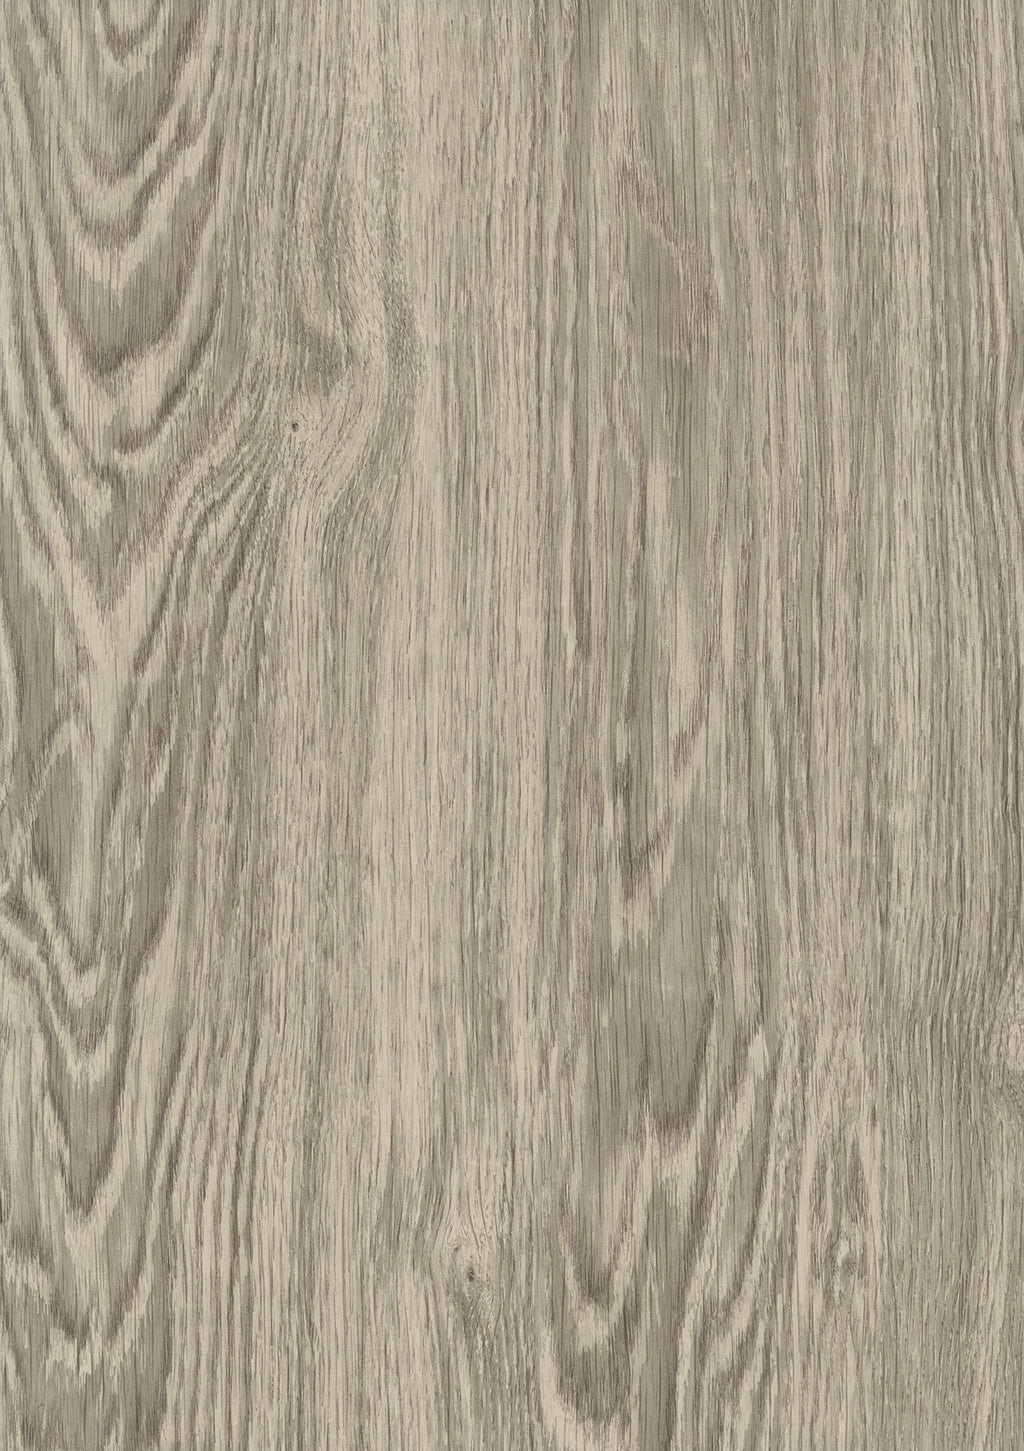 Oak Forest Adhesive Film-a rustic look with this beige and grey oak adhesive film